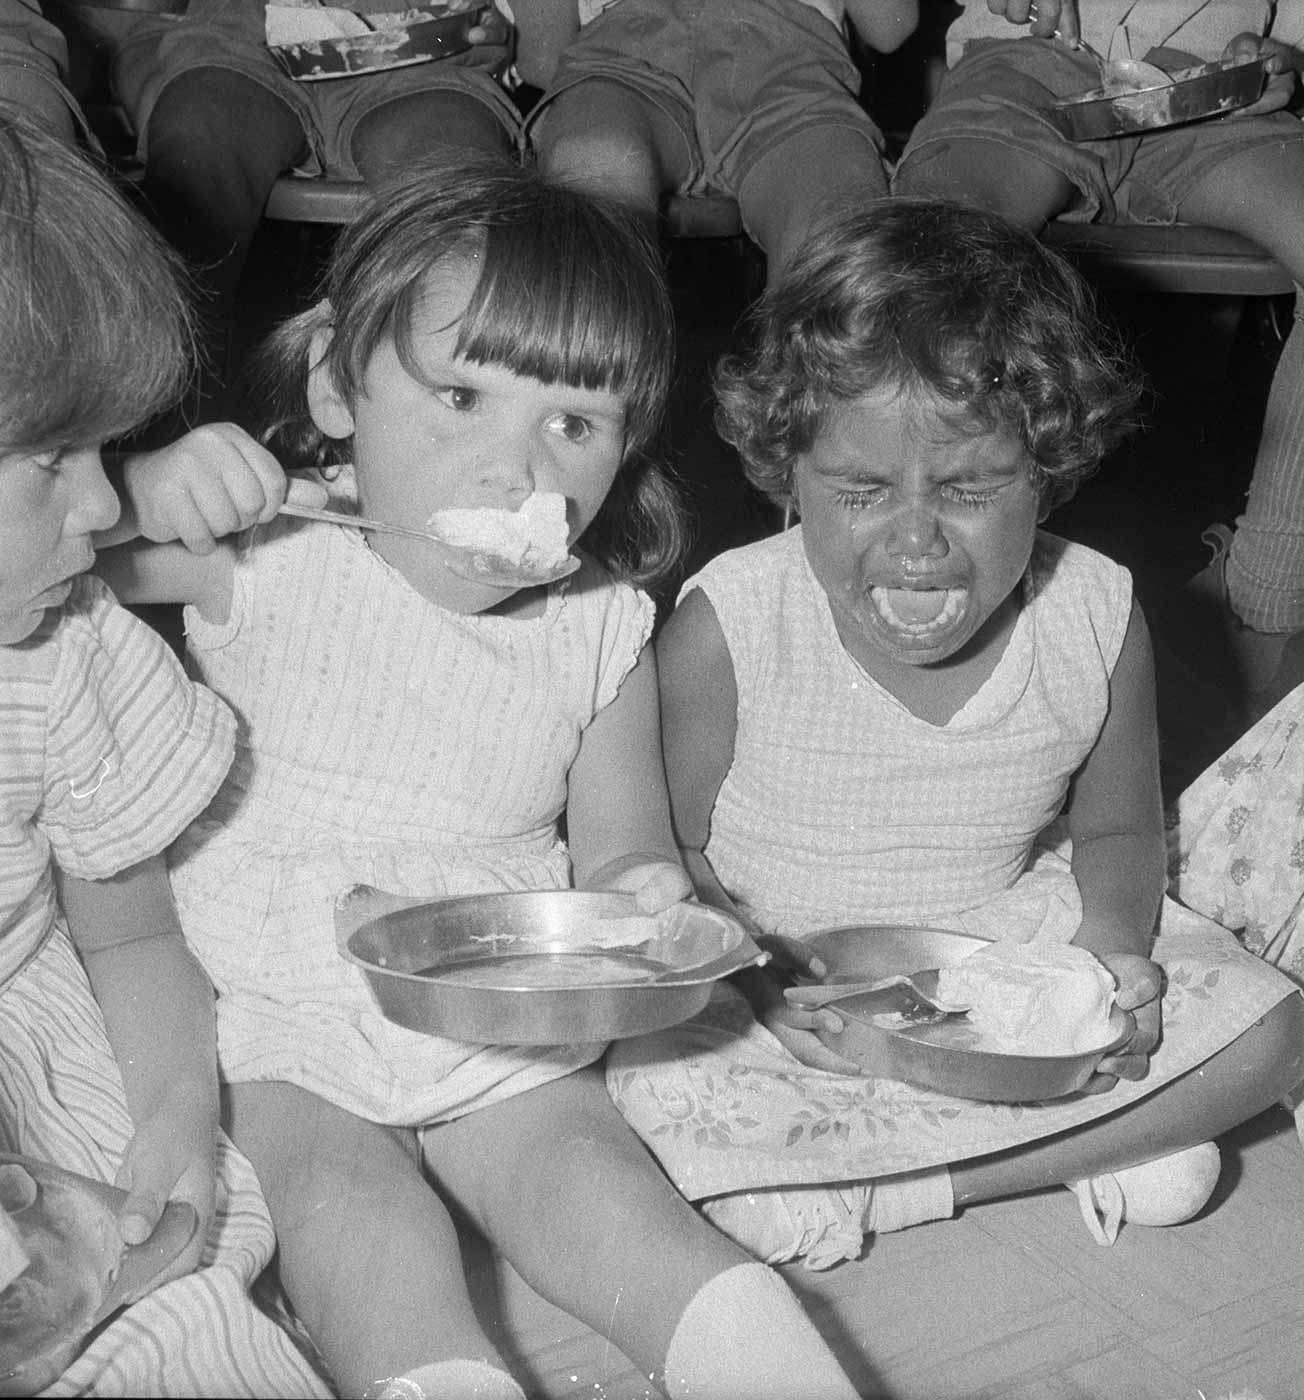 Black and white photo showing three young girls icecream in metal bowls. A young Aboriginal girl on the right is crying. The girl at centre holds a spoon with icecream to her mouth, and a girl partially visible on the left stares at the distressed girl. - click to view larger image